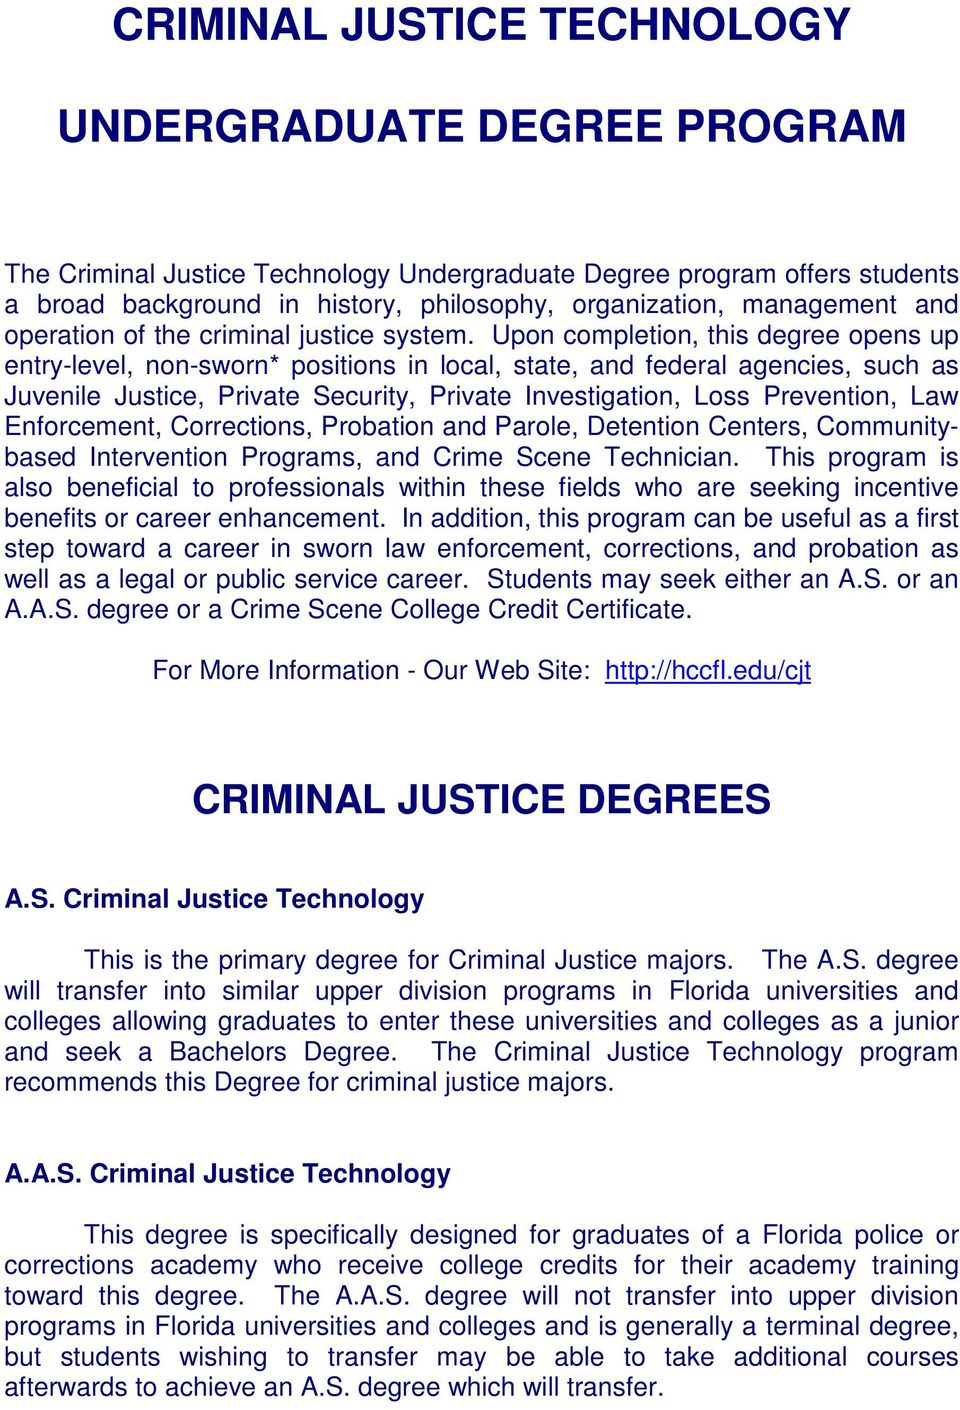 Upon completion, this degree opens up entry-level, non-sworn* positions in local, state, and federal agencies, such as Juvenile Justice, Private Security, Private Investigation, Loss Prevention, Law